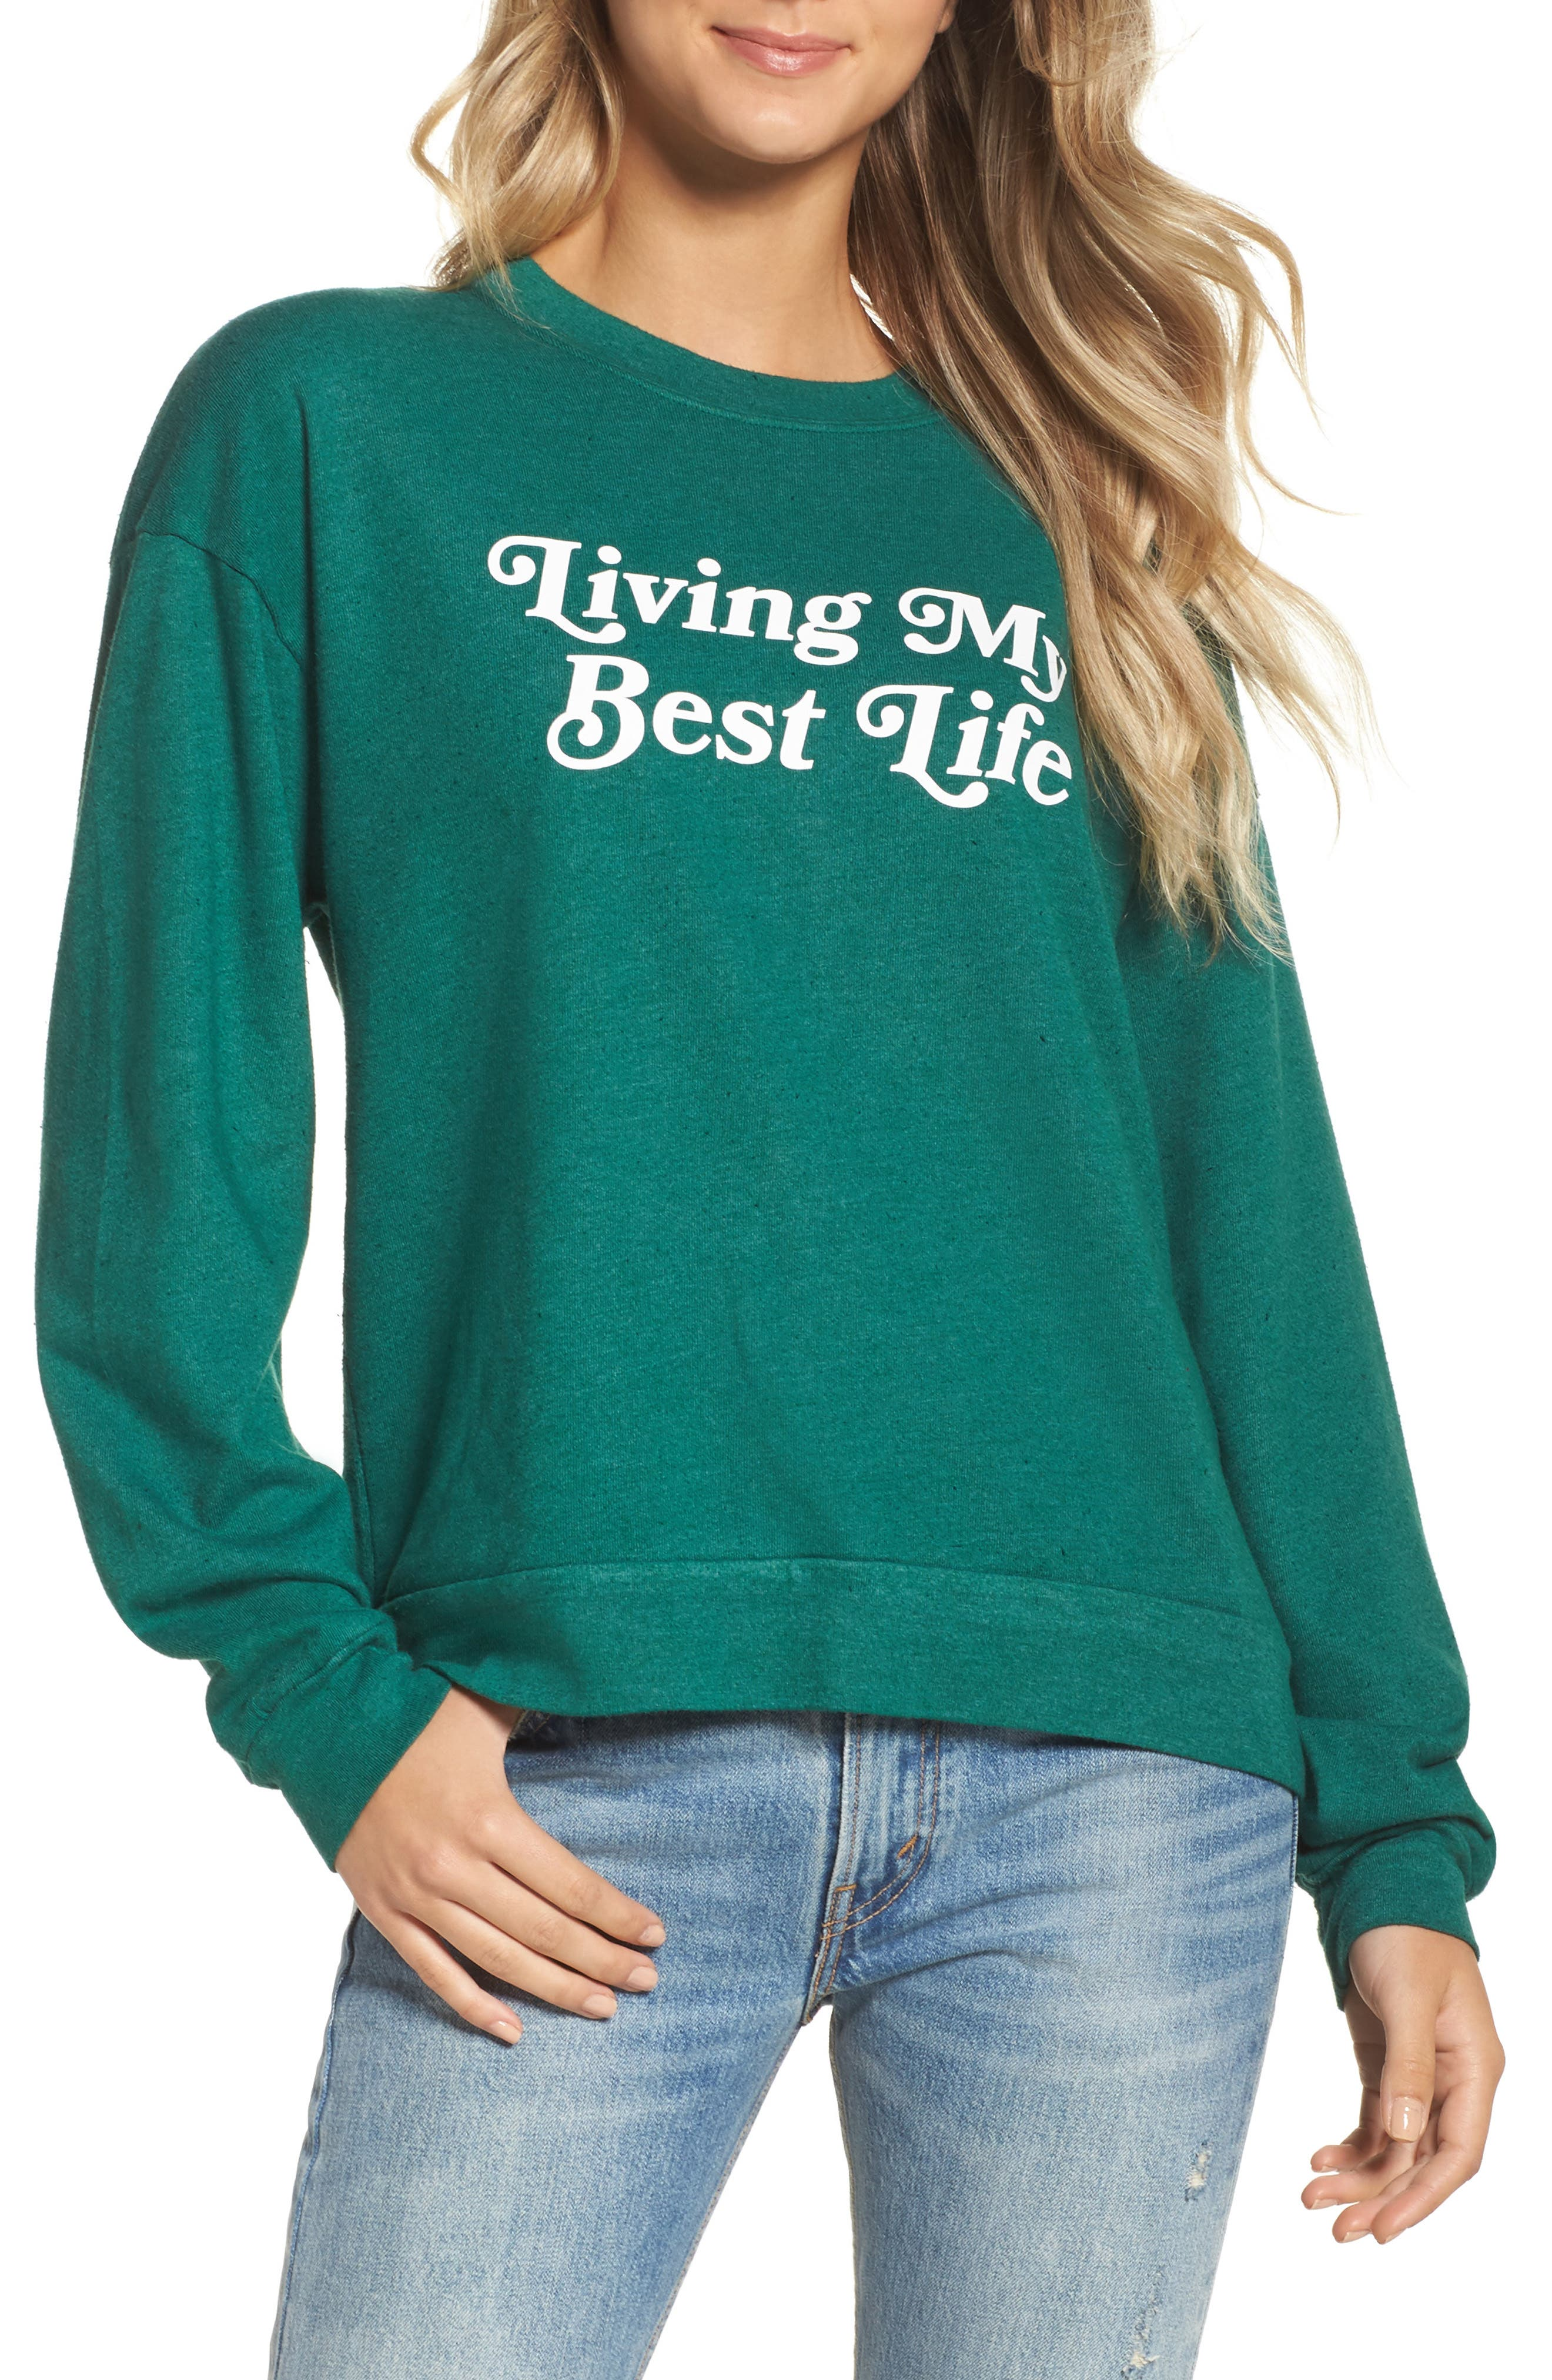 Main Image - Private Party Living My Best Life Sweatshirt